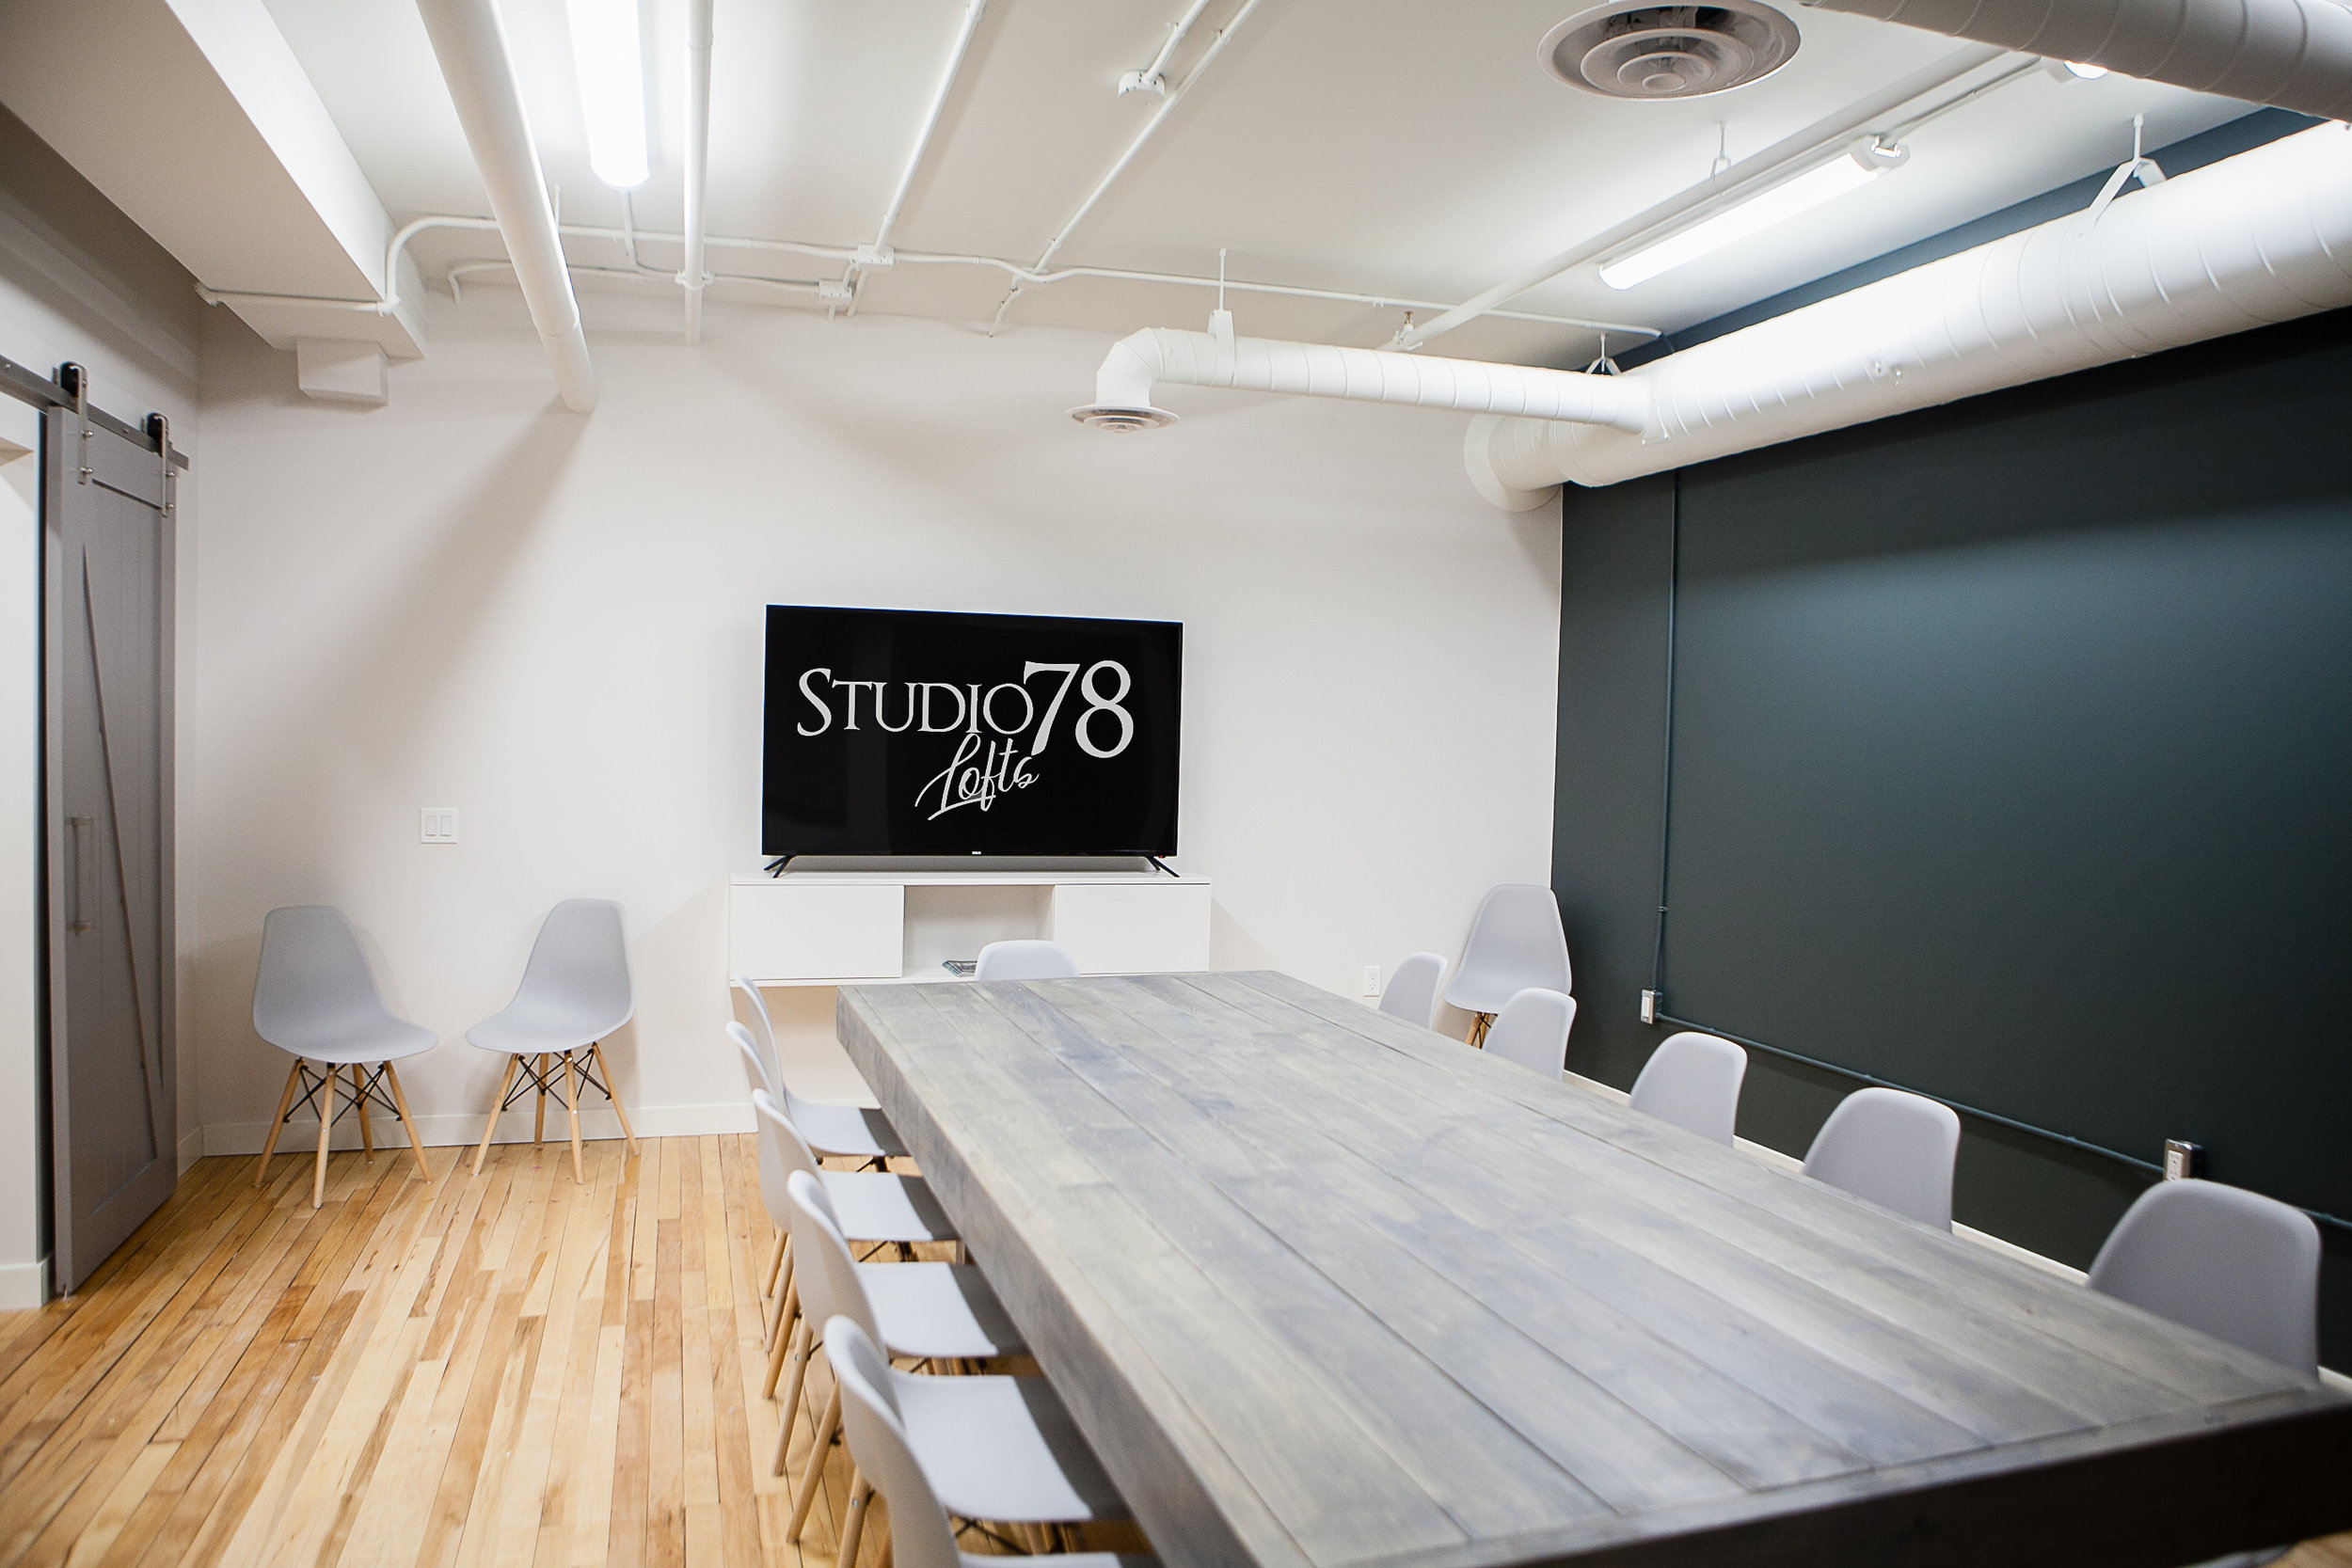 "Small Boardroom - The Layout for the Small Boardroom is 16' deep by 22' wide. Ideal for up to 10-12 people. Featuring 65"" TV with Wifi and whiteboards for meetings. Offering coffee and snacks catering services, to appetizers and beverages for evening meetings and workshops."